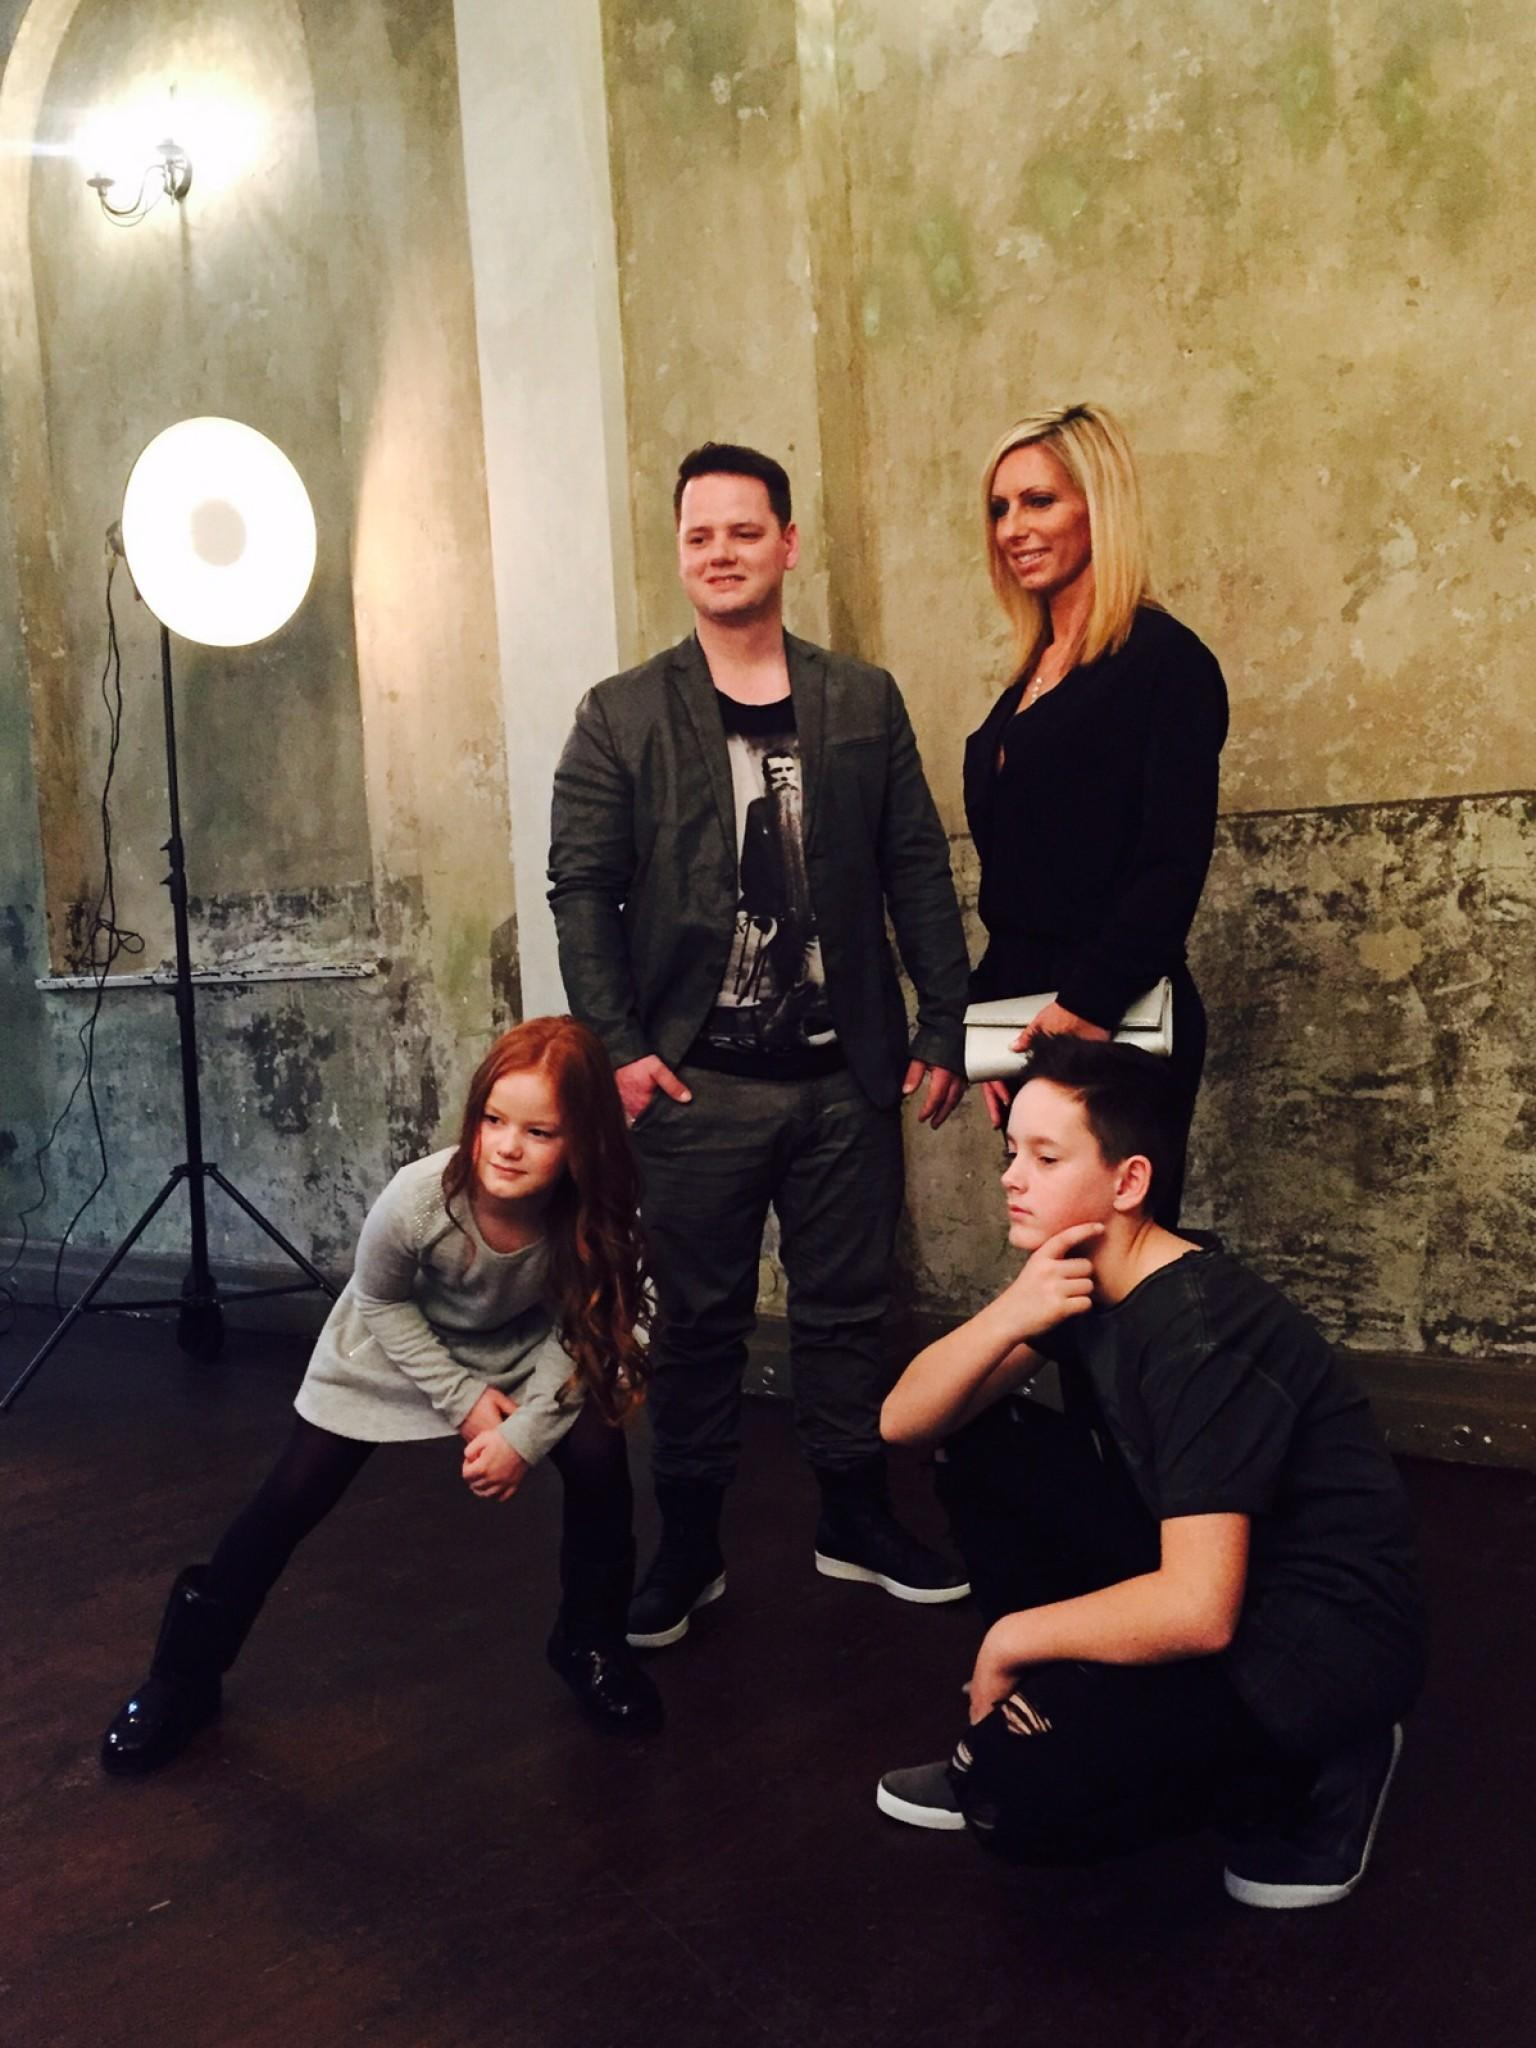 Shopping Queen – Familien-Spezial: Backstage beim Familien-Fotoshooting